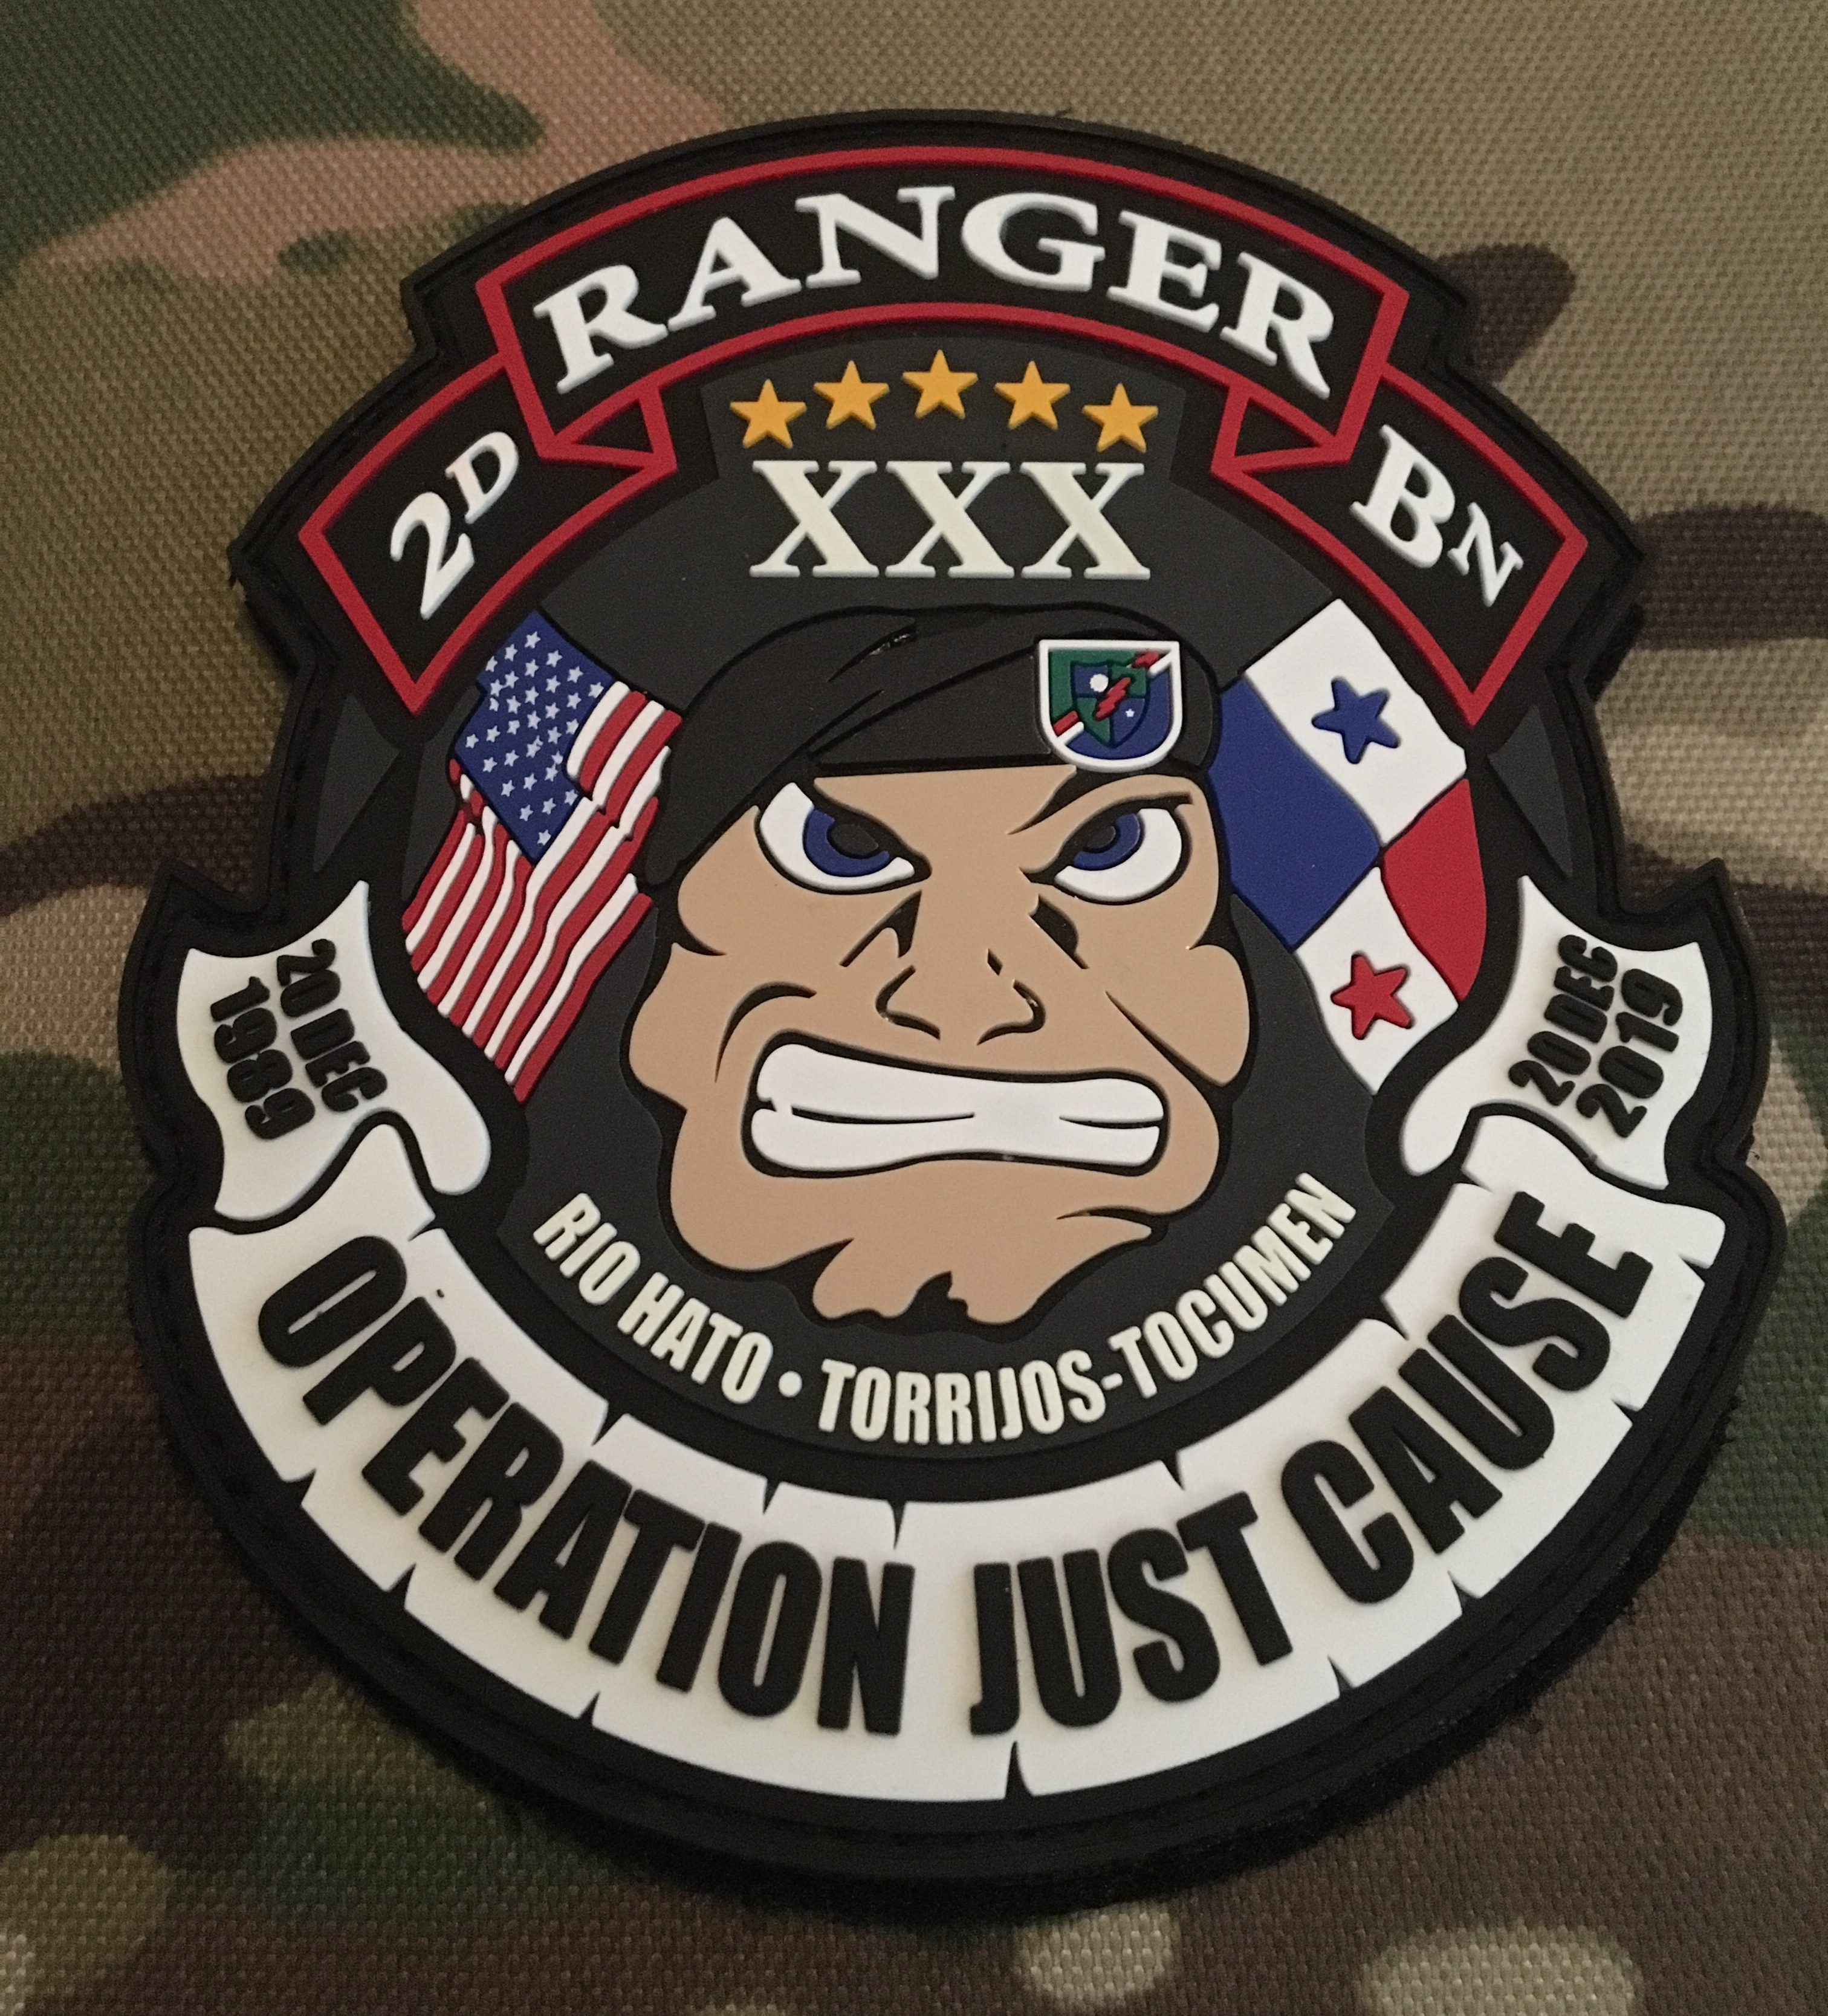 2bn patch